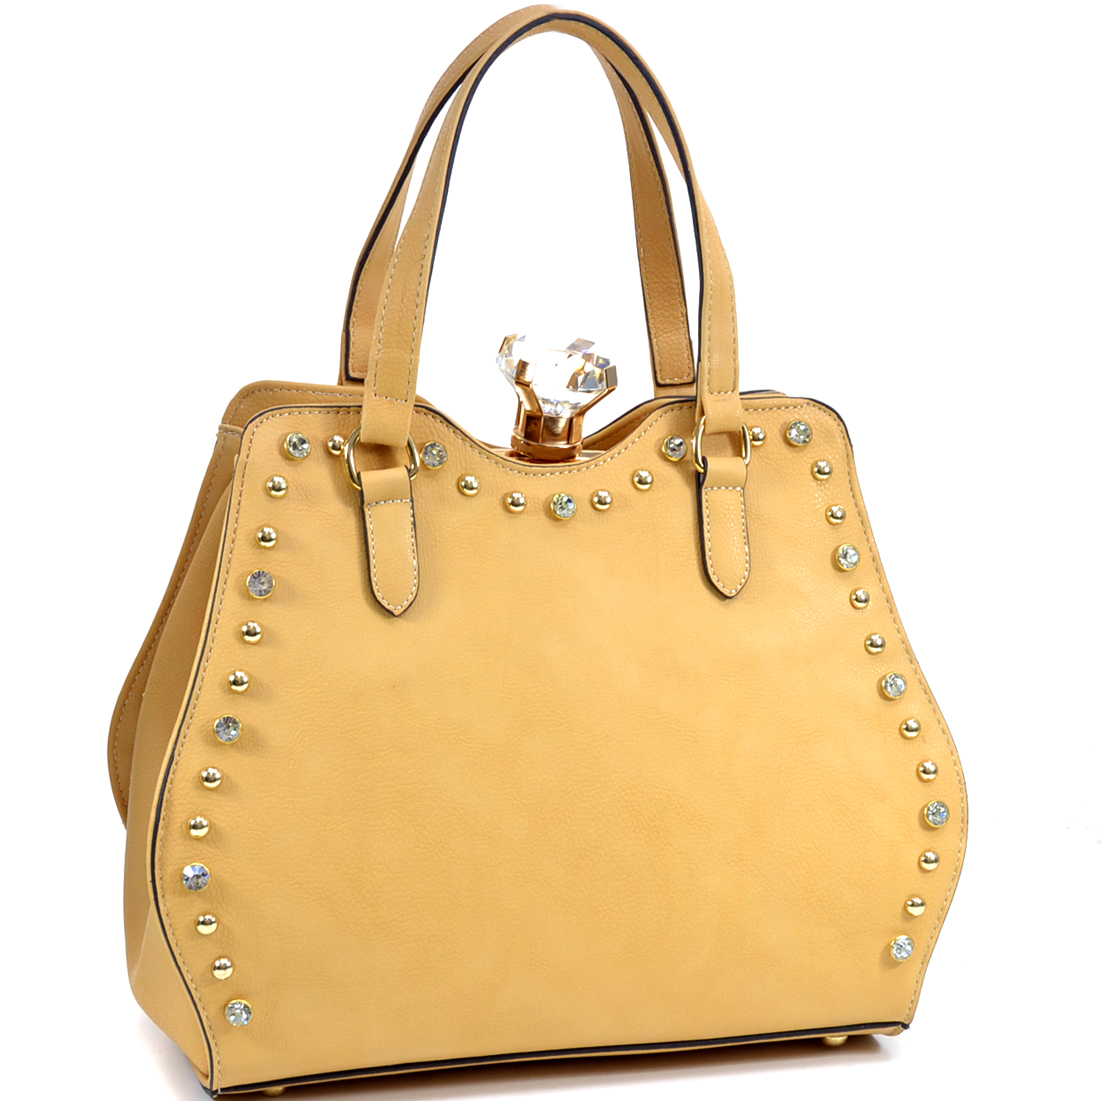 Rhinestone Gold Studded Frame Satchel With Large Jewel Stone